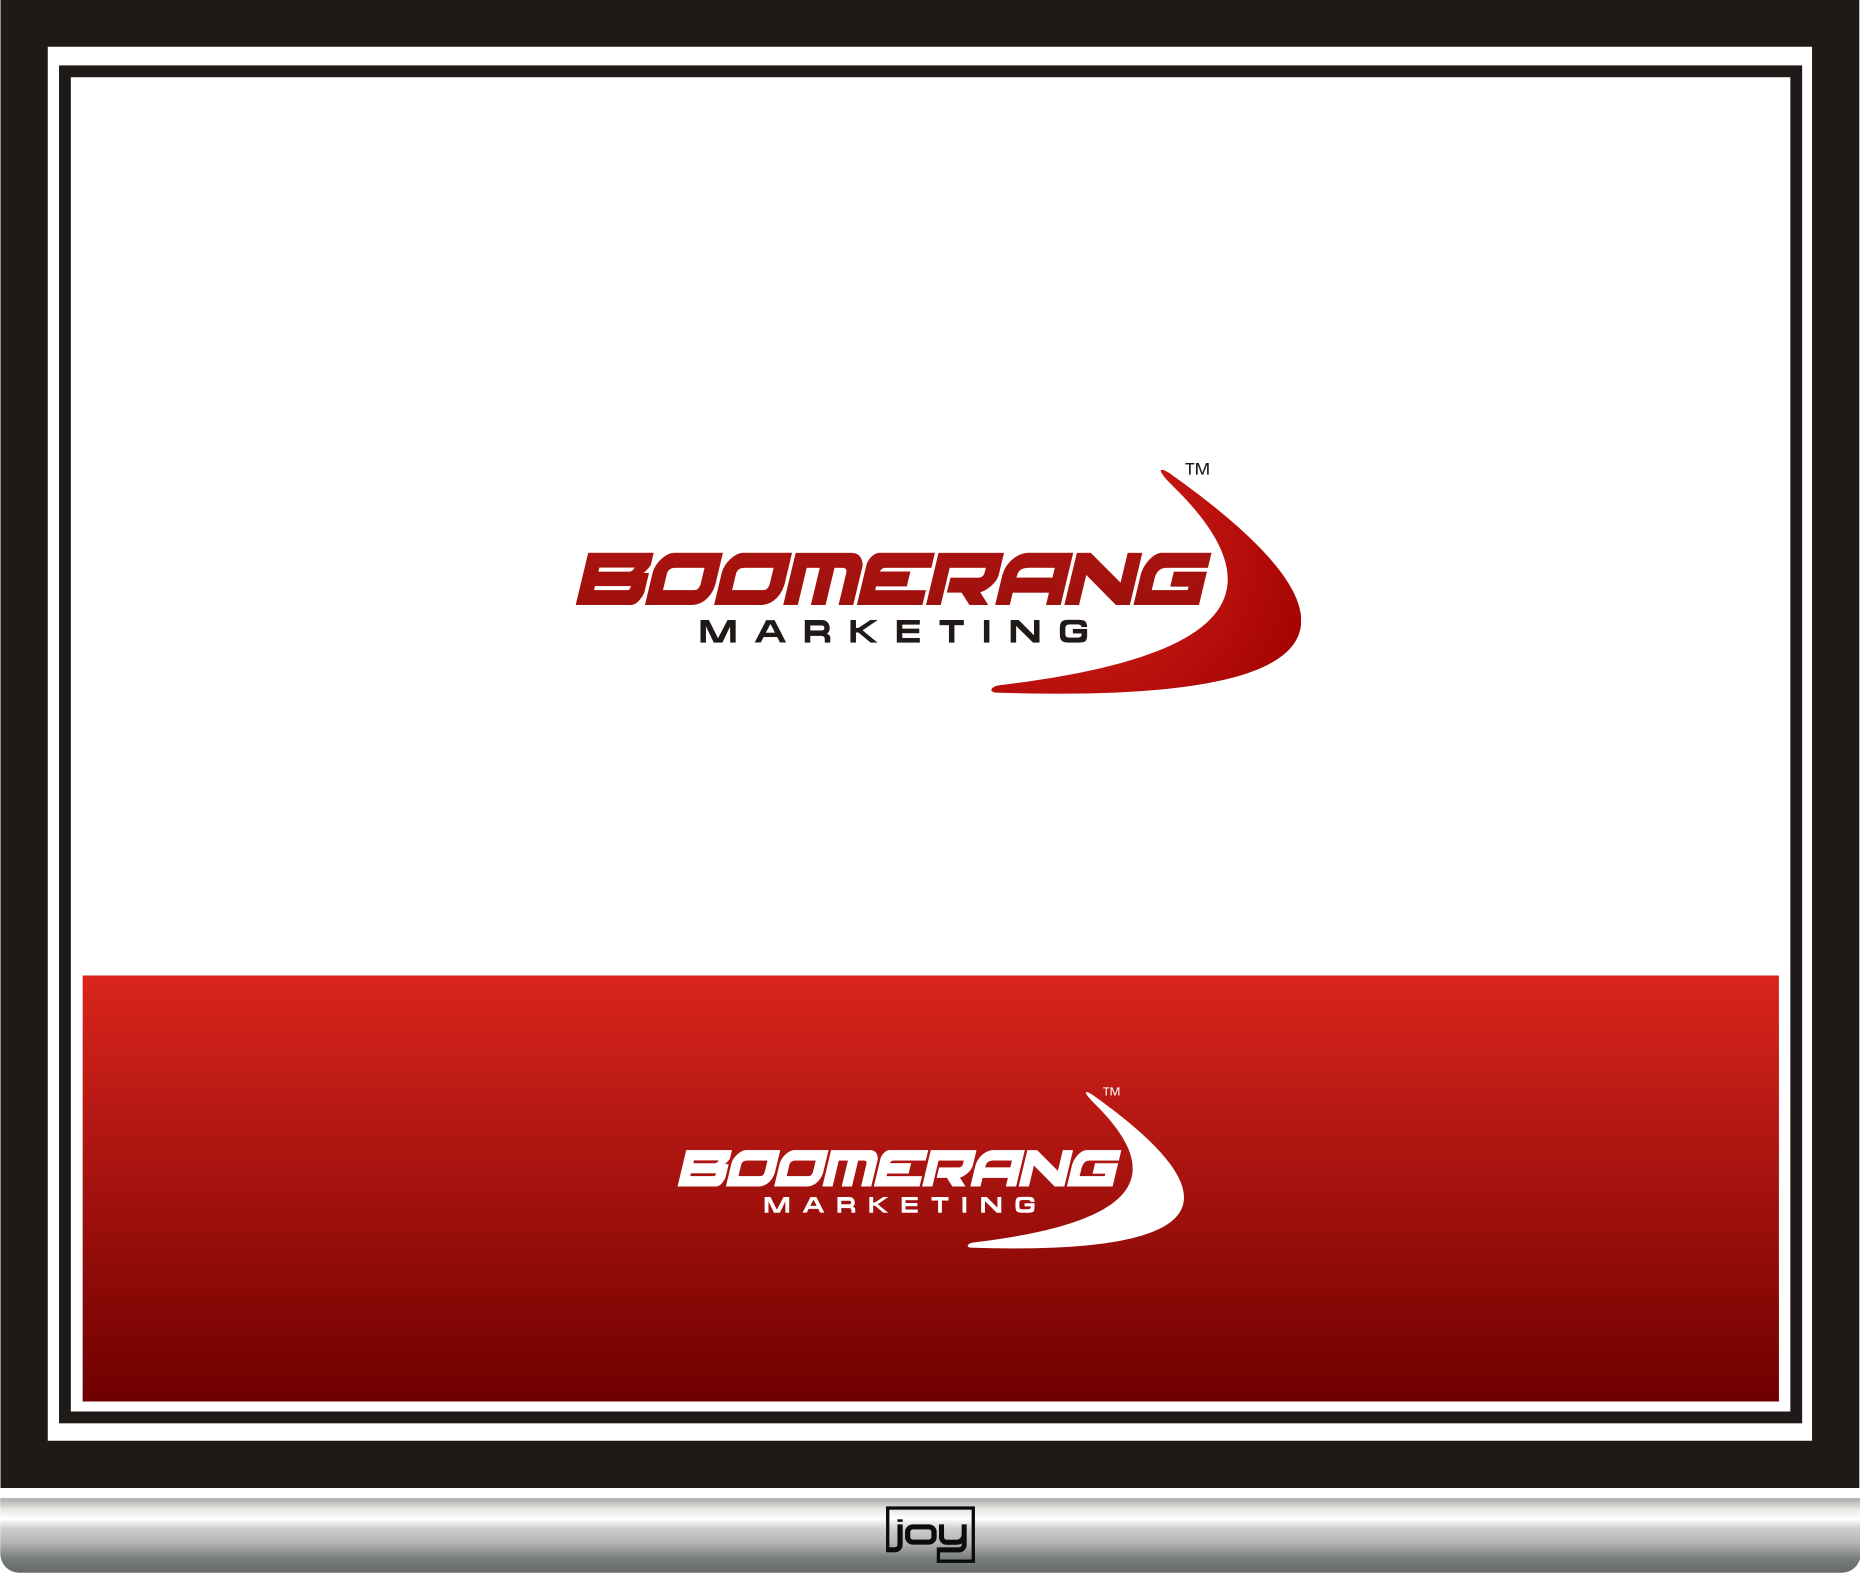 Logo Design by joysetiawan - Entry No. 89 in the Logo Design Contest Unique Logo Design Wanted for Boomerang Marketing.